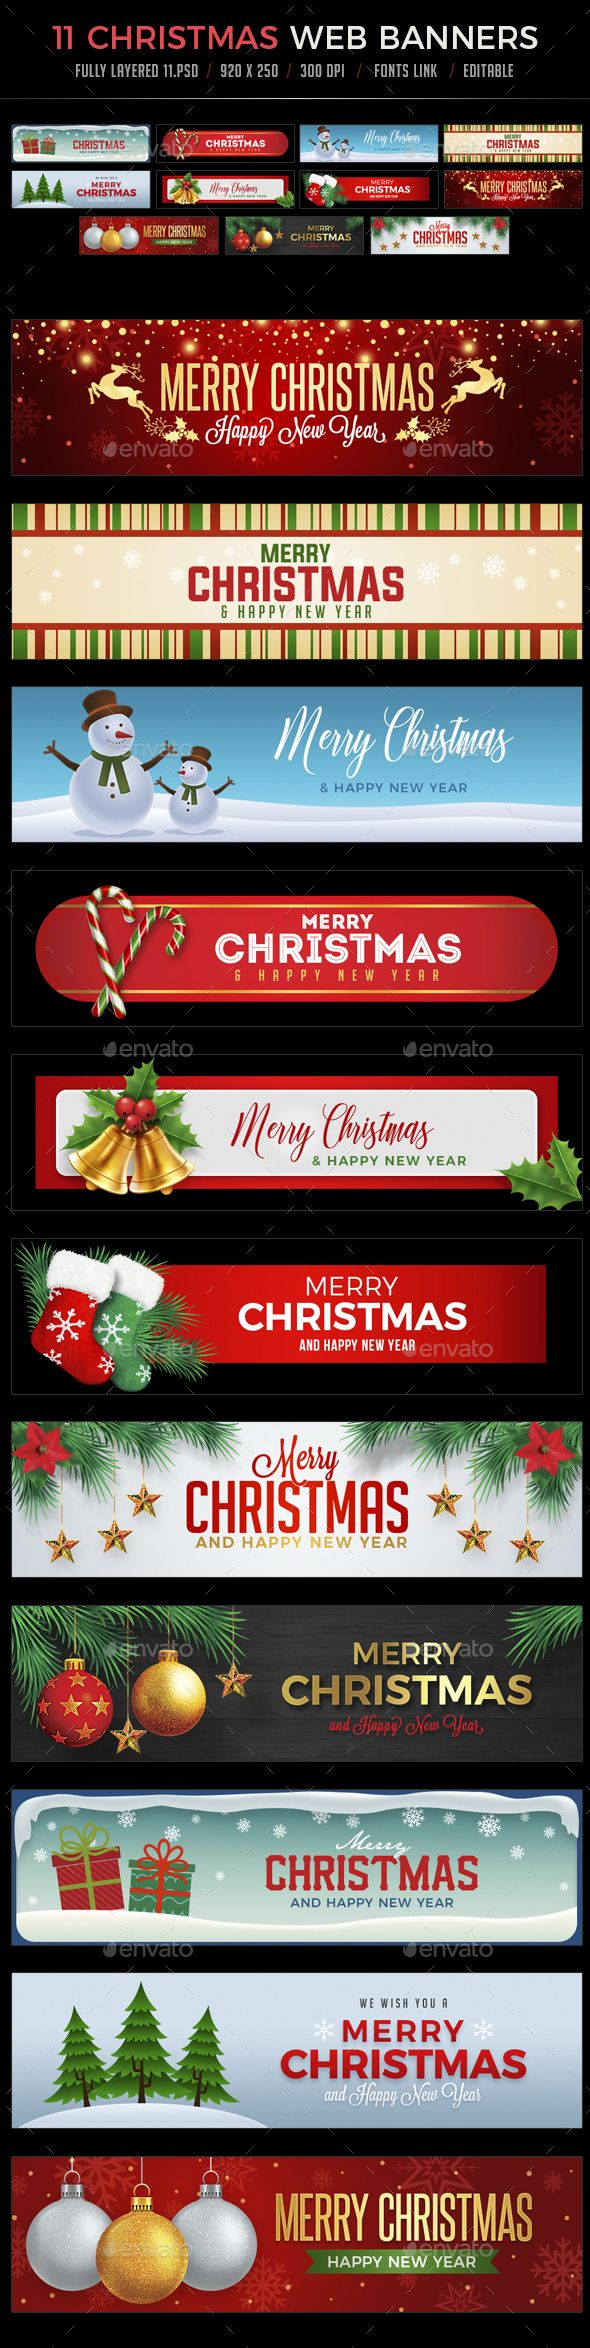 11 Christmas Web Banners - #Banners & Ads #Web Elements